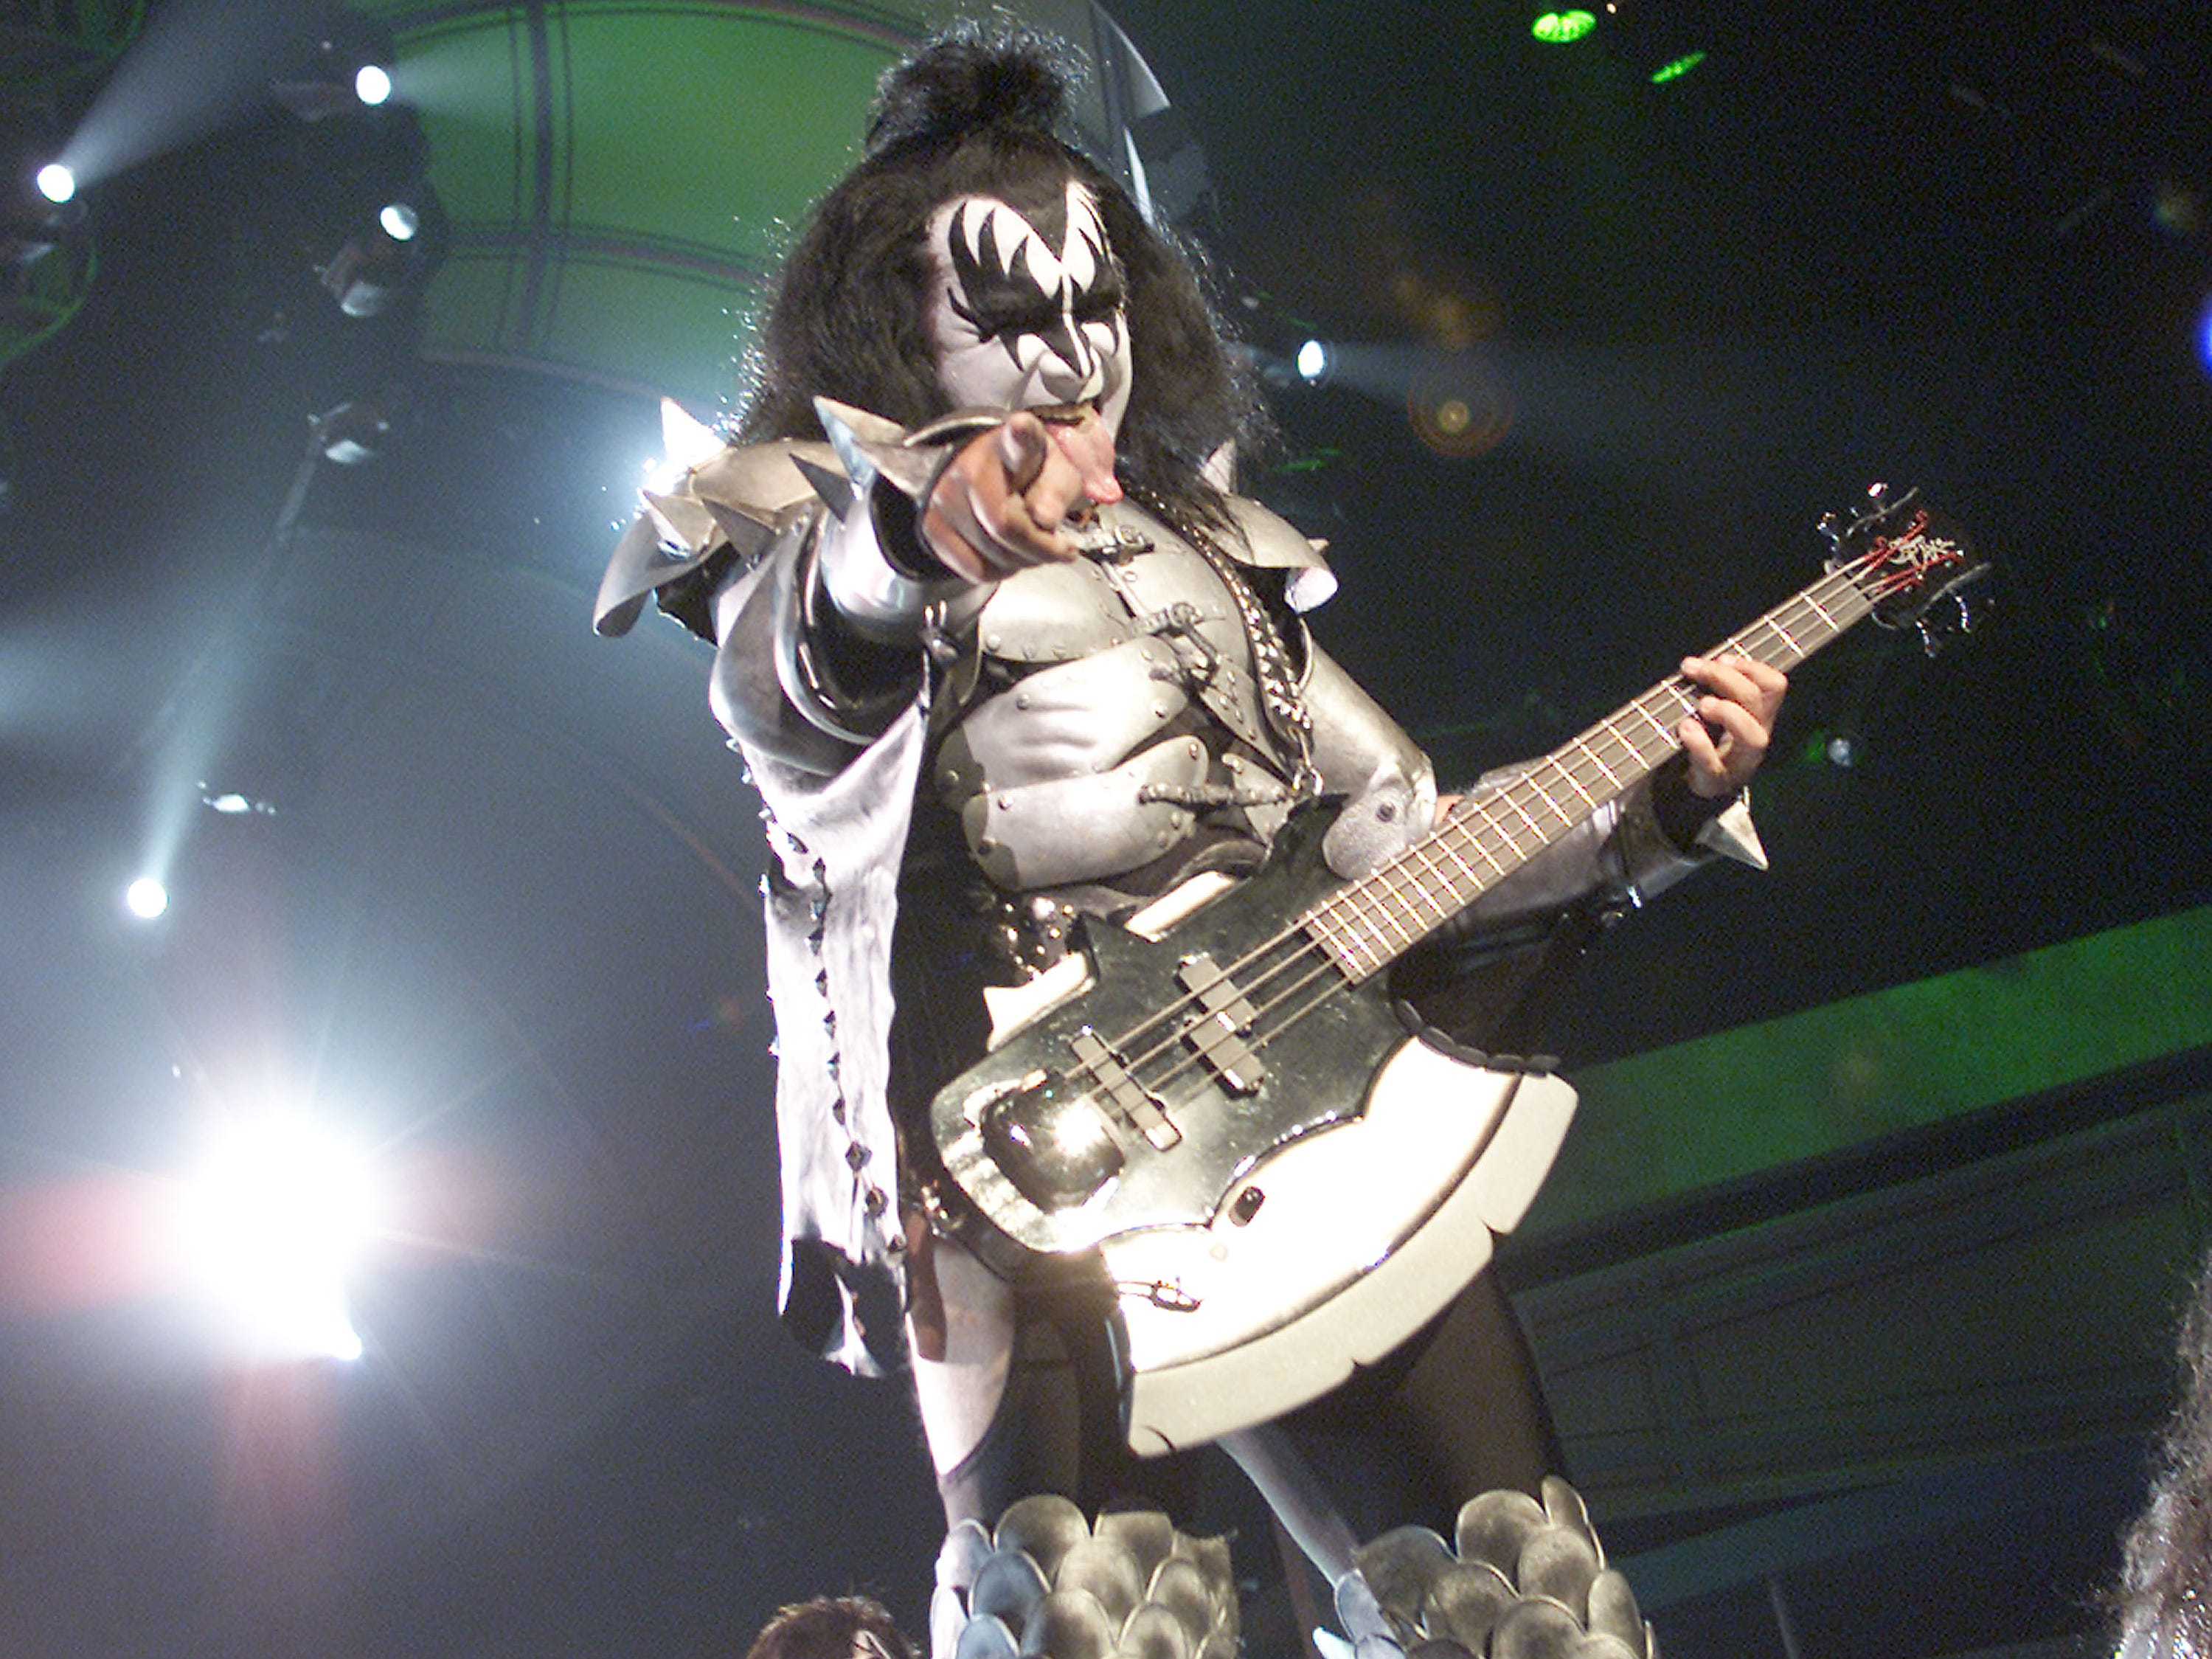 """KISS, with Gene Simmons, performs at a taping of """"American Bandstand's 50th....A Celebration"""" at the Pasadena Civic Auditorium, Pasadena, Ca. Friday, April 19, 2002. Photo by Kevin Winter/ImageDirect."""